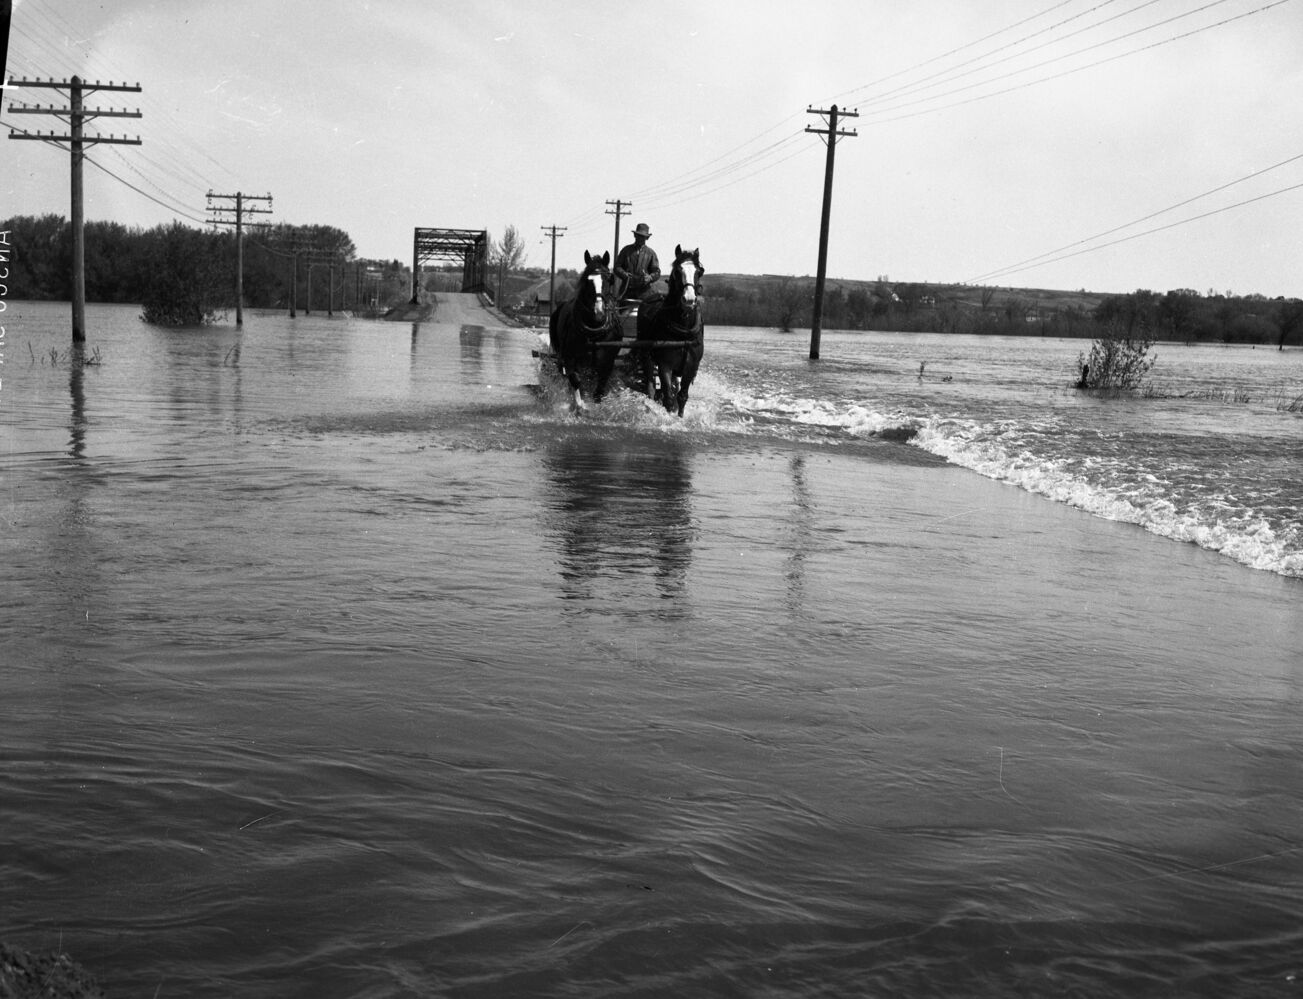 Horses can go where cars cannot, as this team crosses the flooded river just past the 18th Street bridge in 1954. (Courtesy CKX fonds, S.J. McKee Archives, Brandon University)